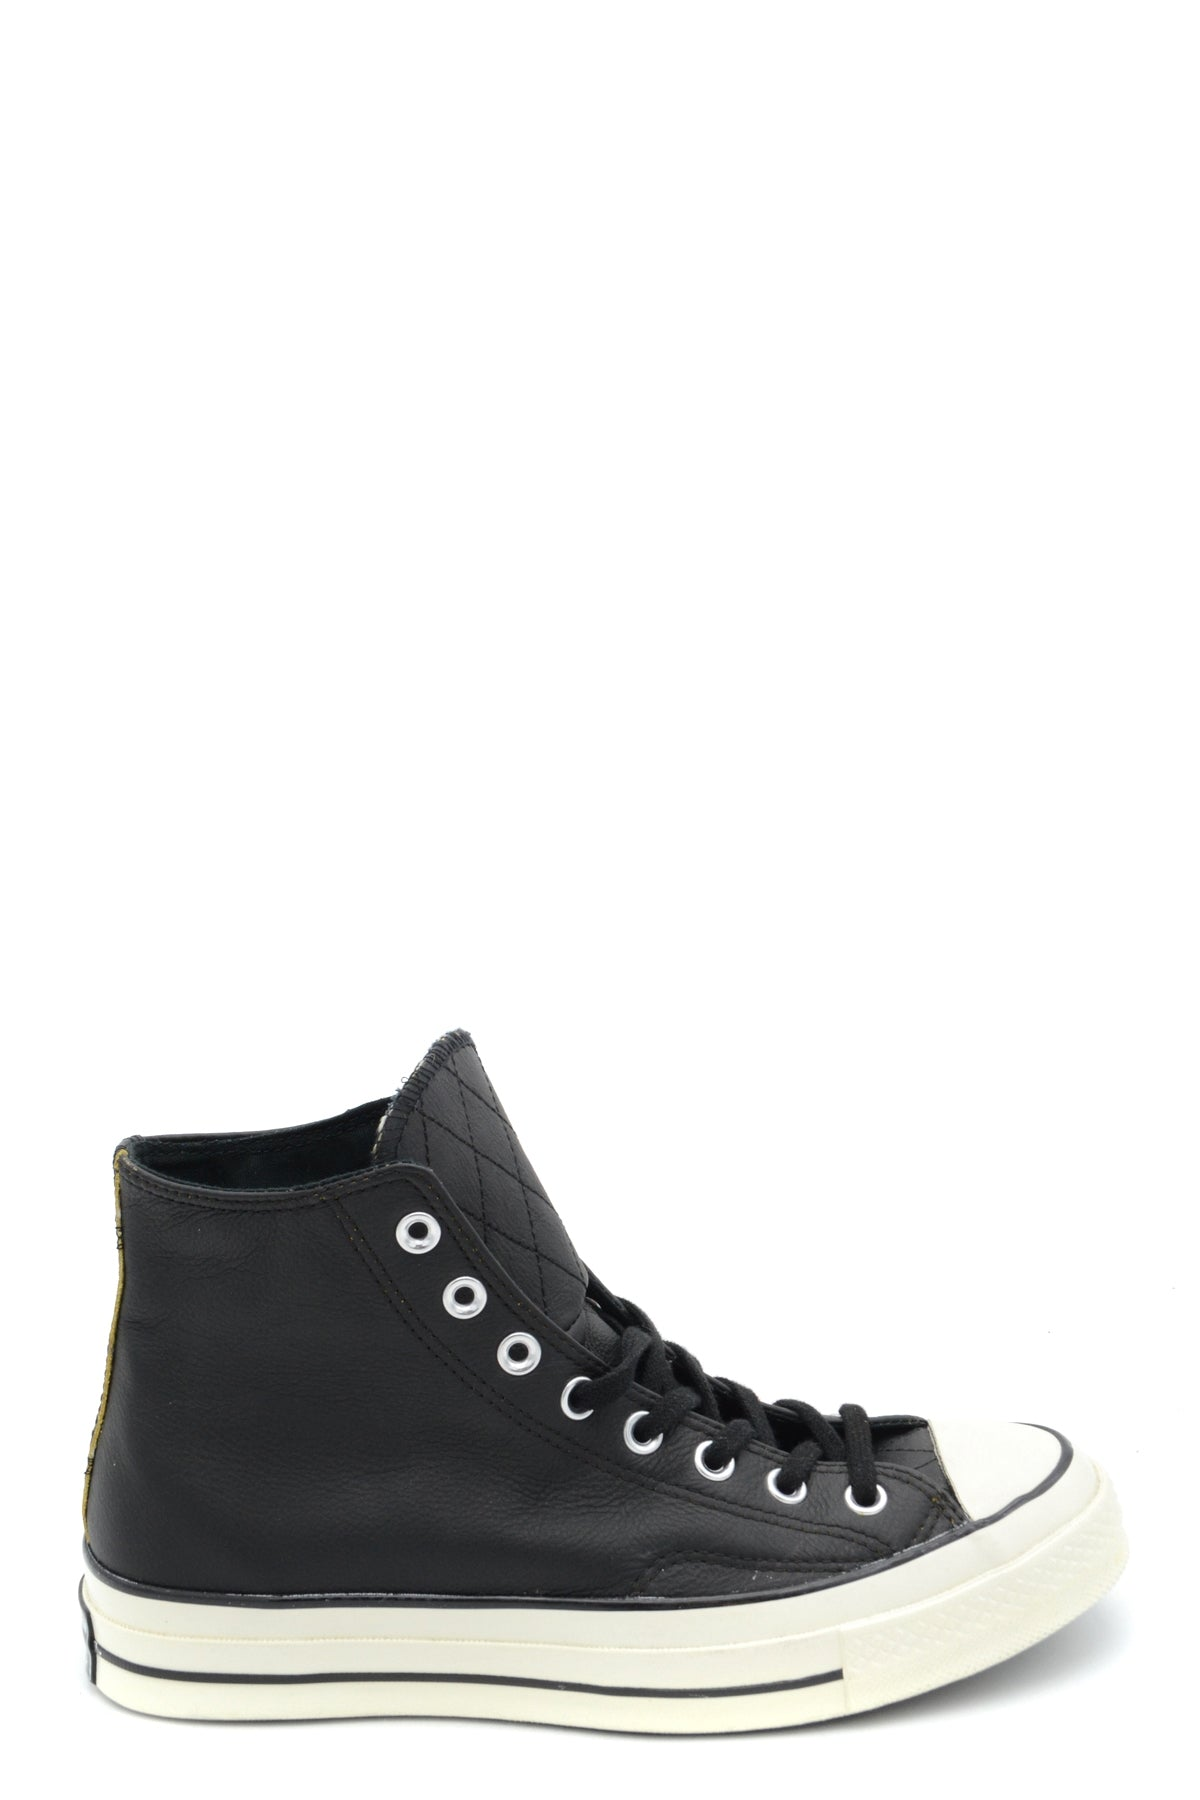 Shoes Converse-Sneakers - Shoes-40-Product Details Type Of Accessory: ShoesSeason: Fall / WinterTerms: New With LabelMain Color: BlackGender: ManMade In: VietnamManufacturer Part Number: 149534CSize: EuYear: 2018Composition: Leather 100%-Keyomi-Sook